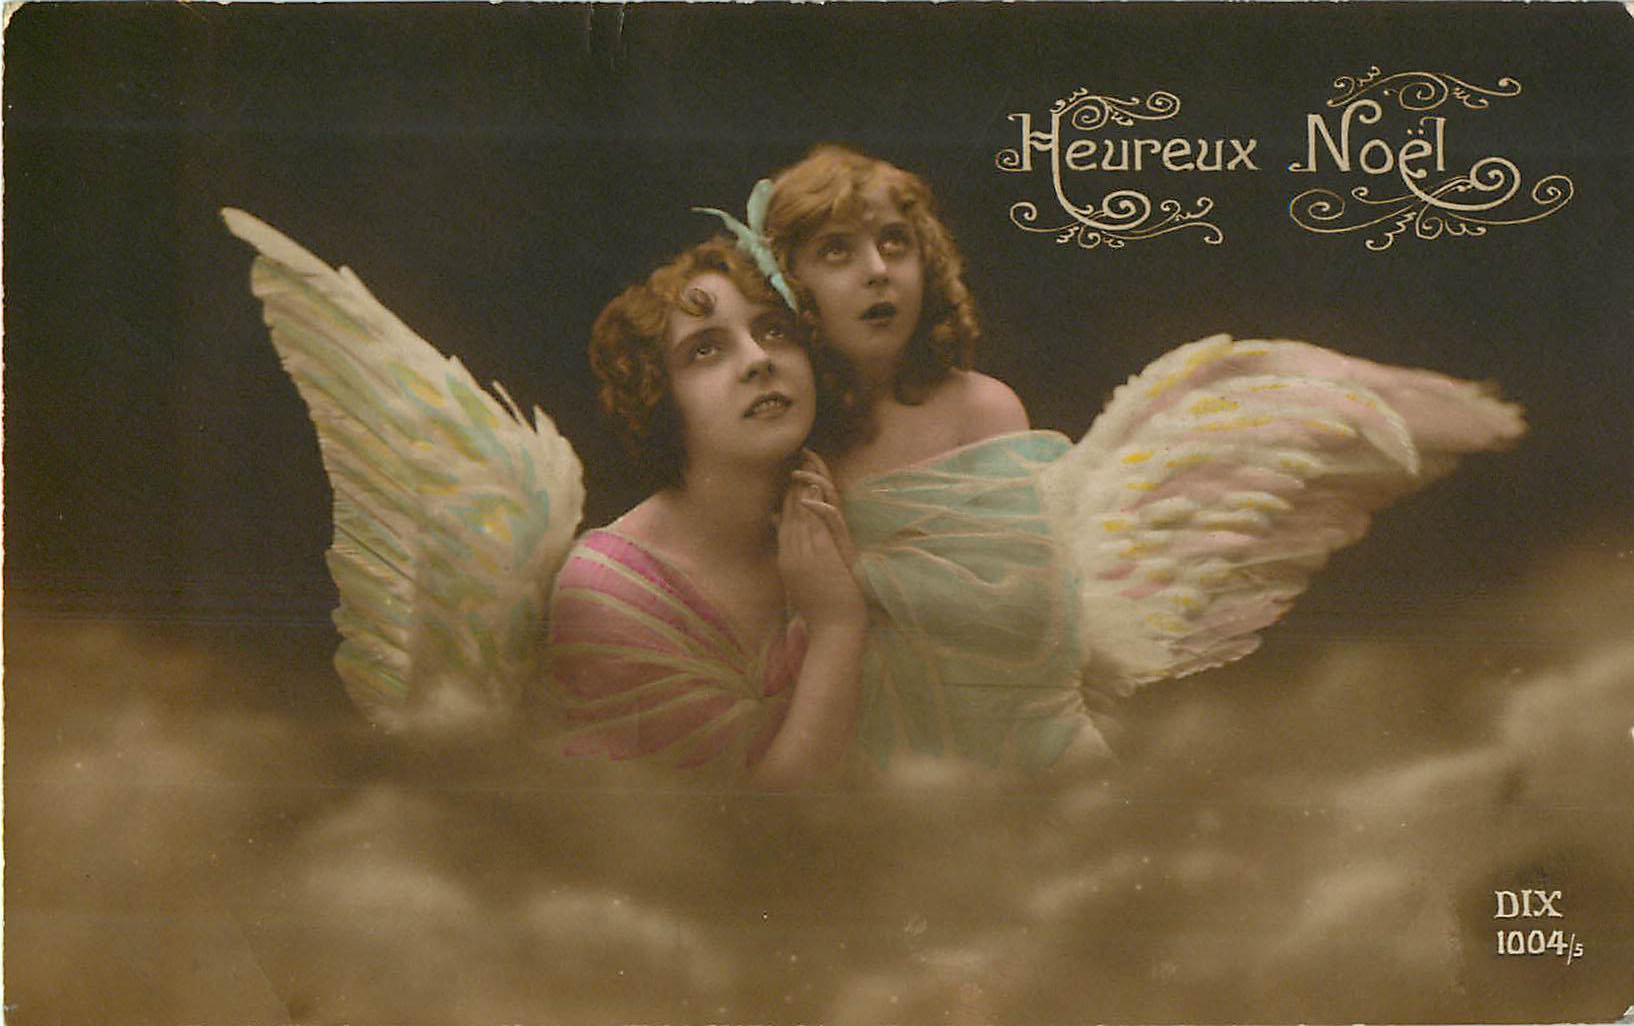 Heureux Noel - Angels in Clouds